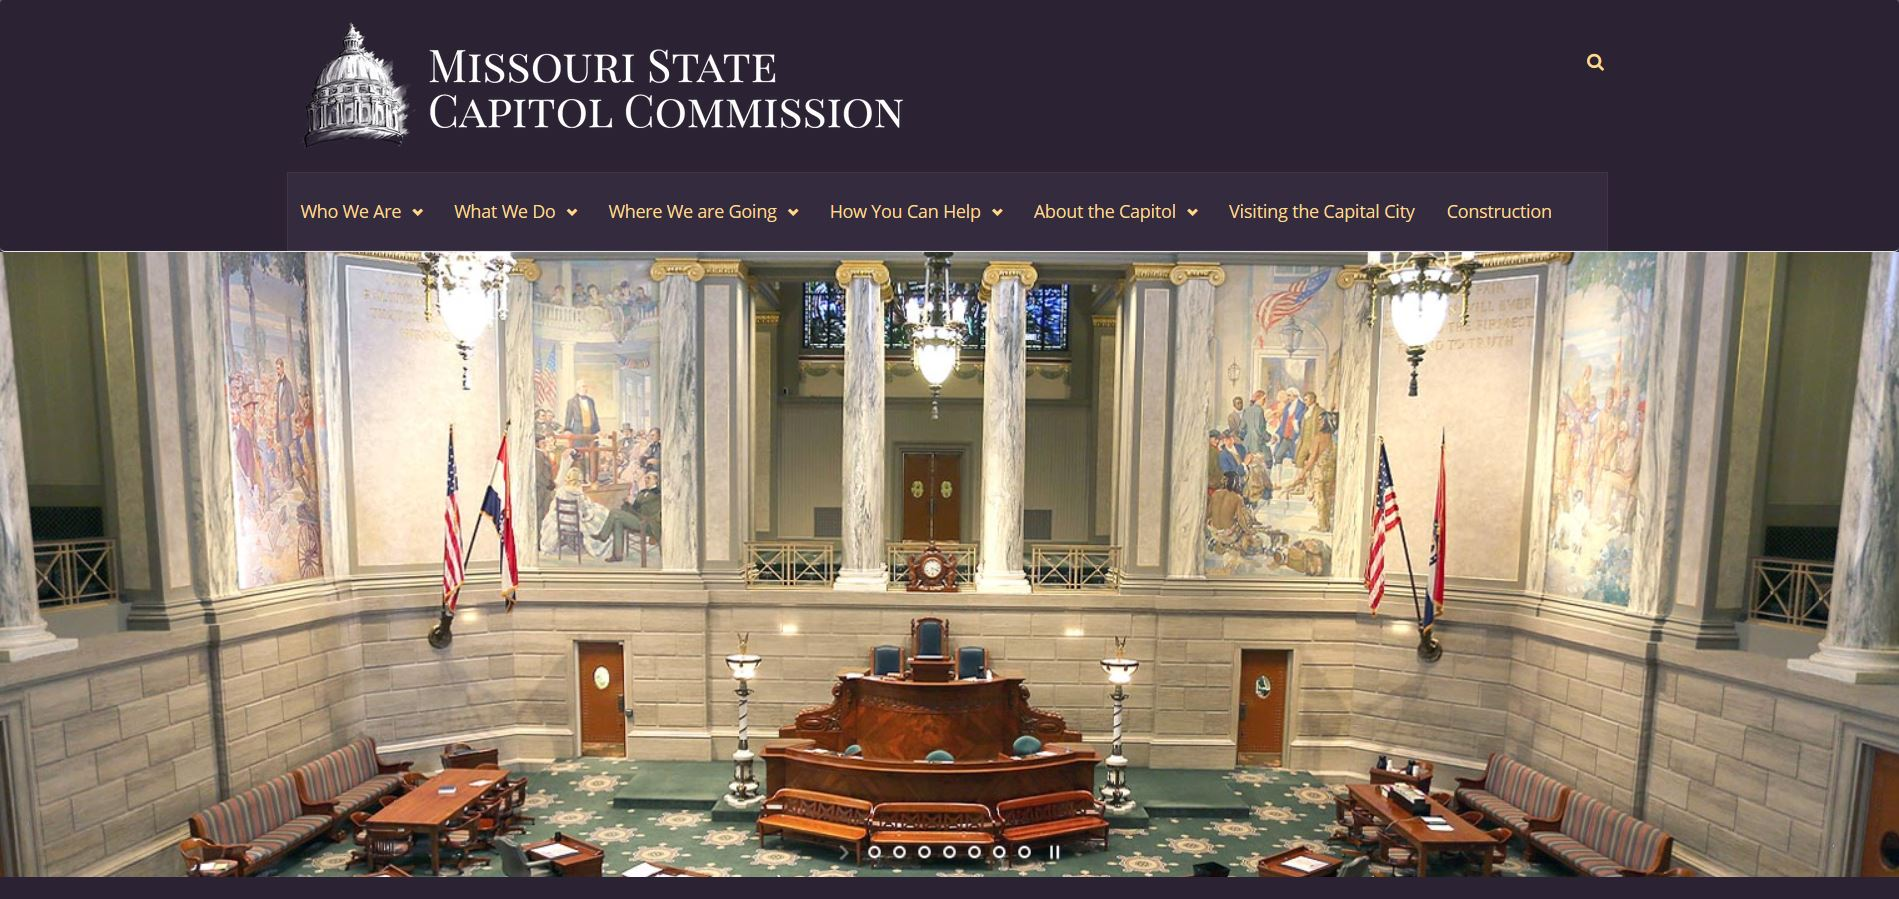 Visit the Missouri State Capitol Commission website to learn more about our state's capitol!